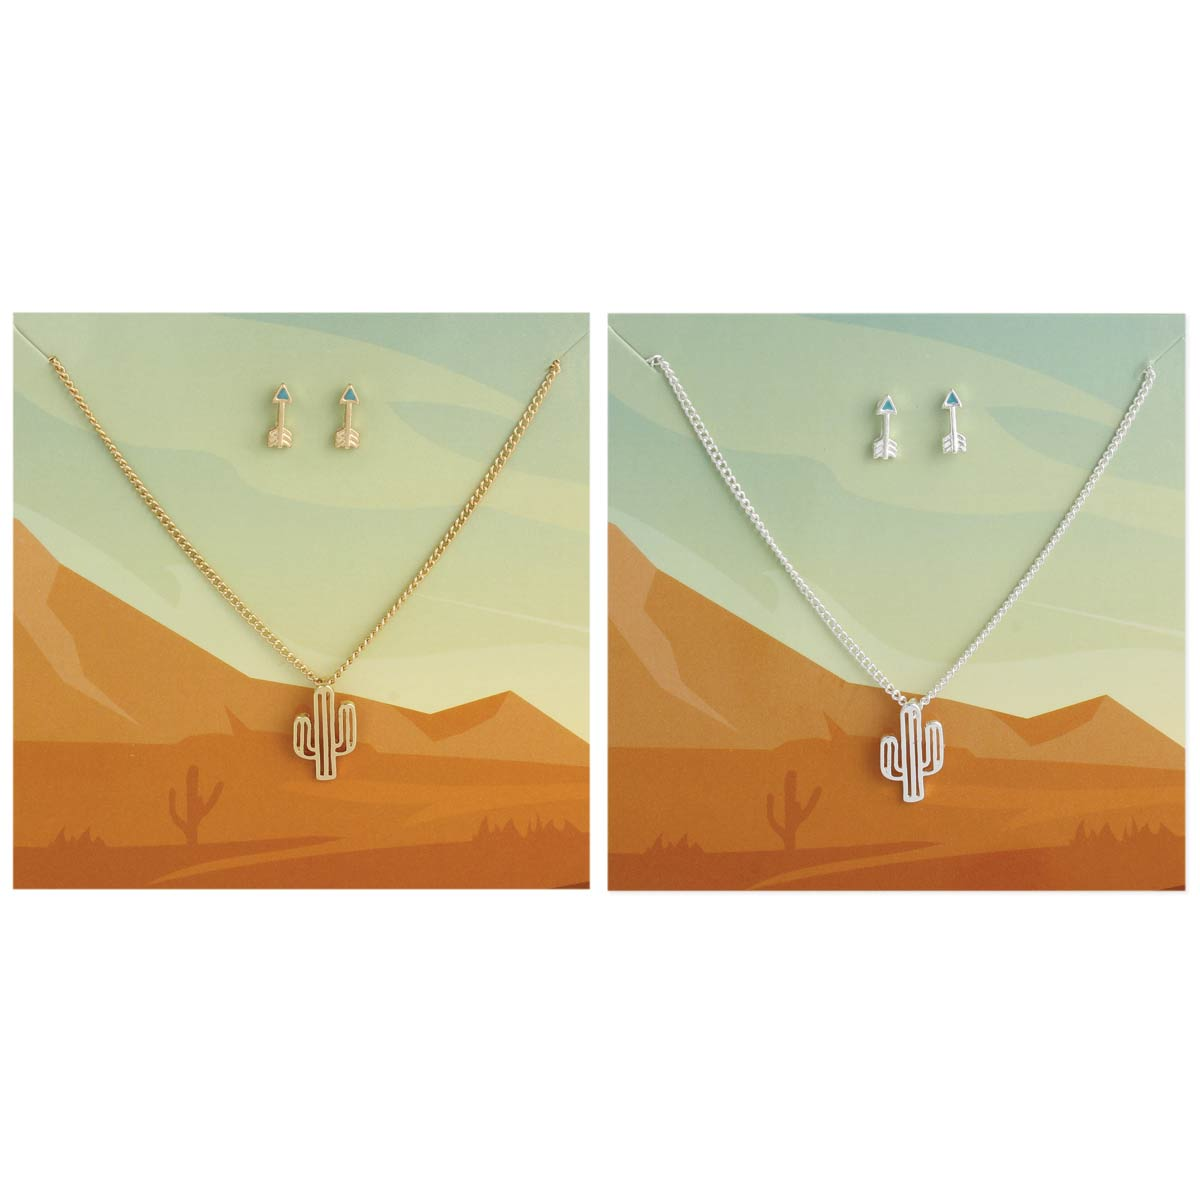 Carded Cactus Arrow Necklace Earring Set